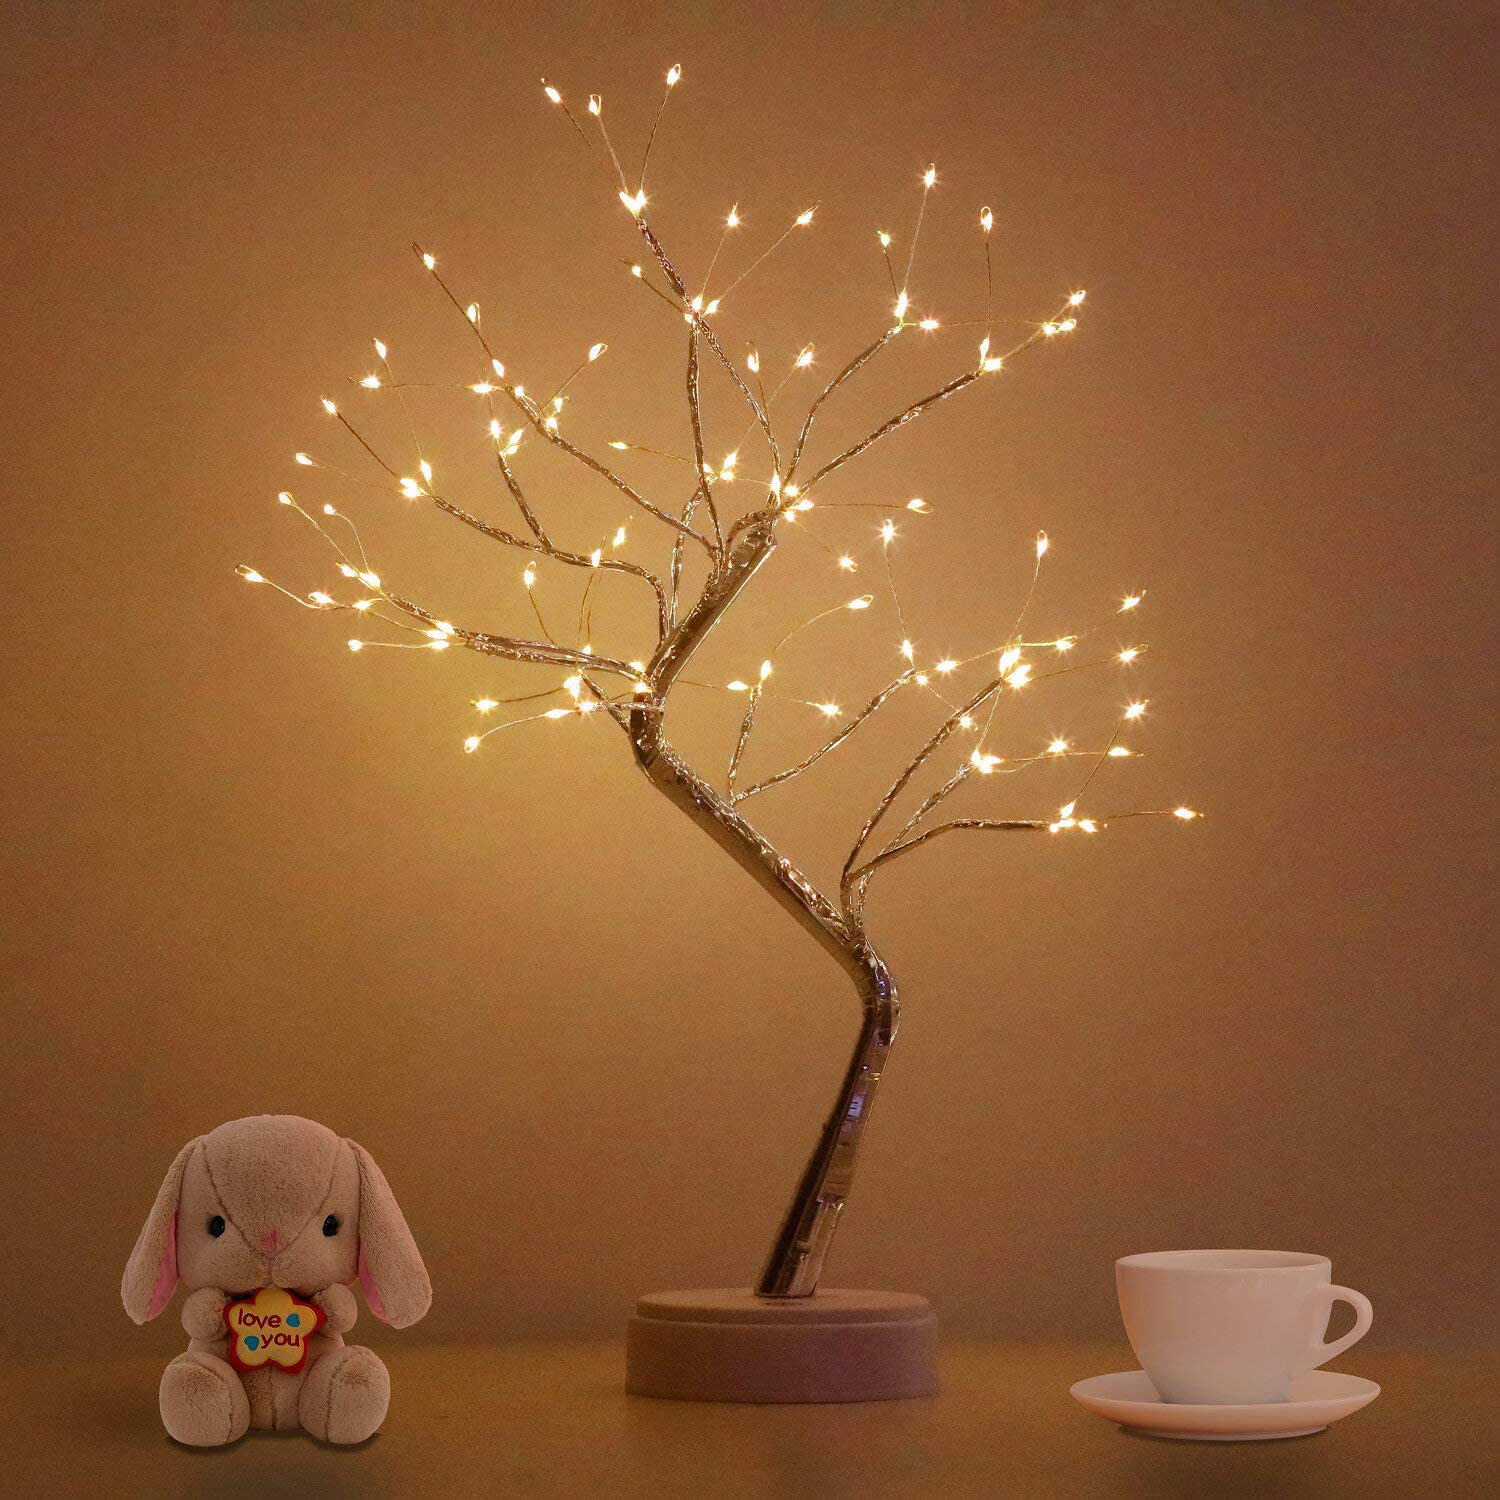 Bonsai Tree Light for Room Decor, Aesthetic Lamps for Living Room, Cute Night Light for House Decor, Good Ideas for Gifts, Home Decorations, Weddings,Christmas, Holidays and More (Warm White, 108 LED)